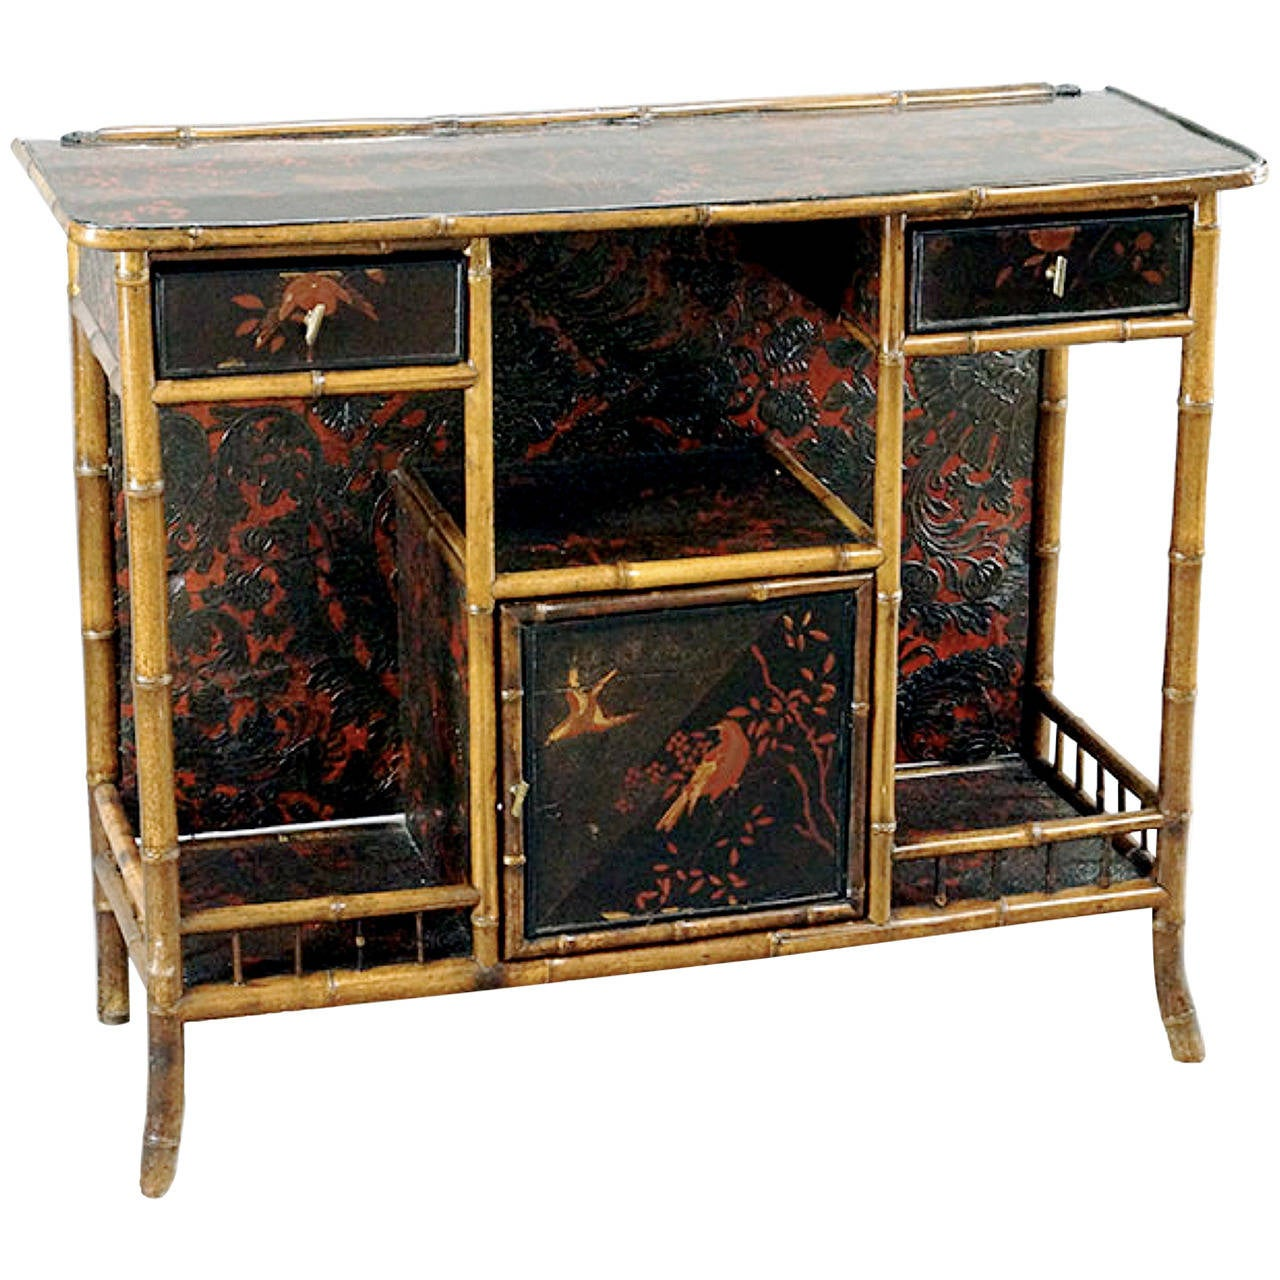 19th century english bamboo and chinoiserie console or bar at 1stdibs. Black Bedroom Furniture Sets. Home Design Ideas